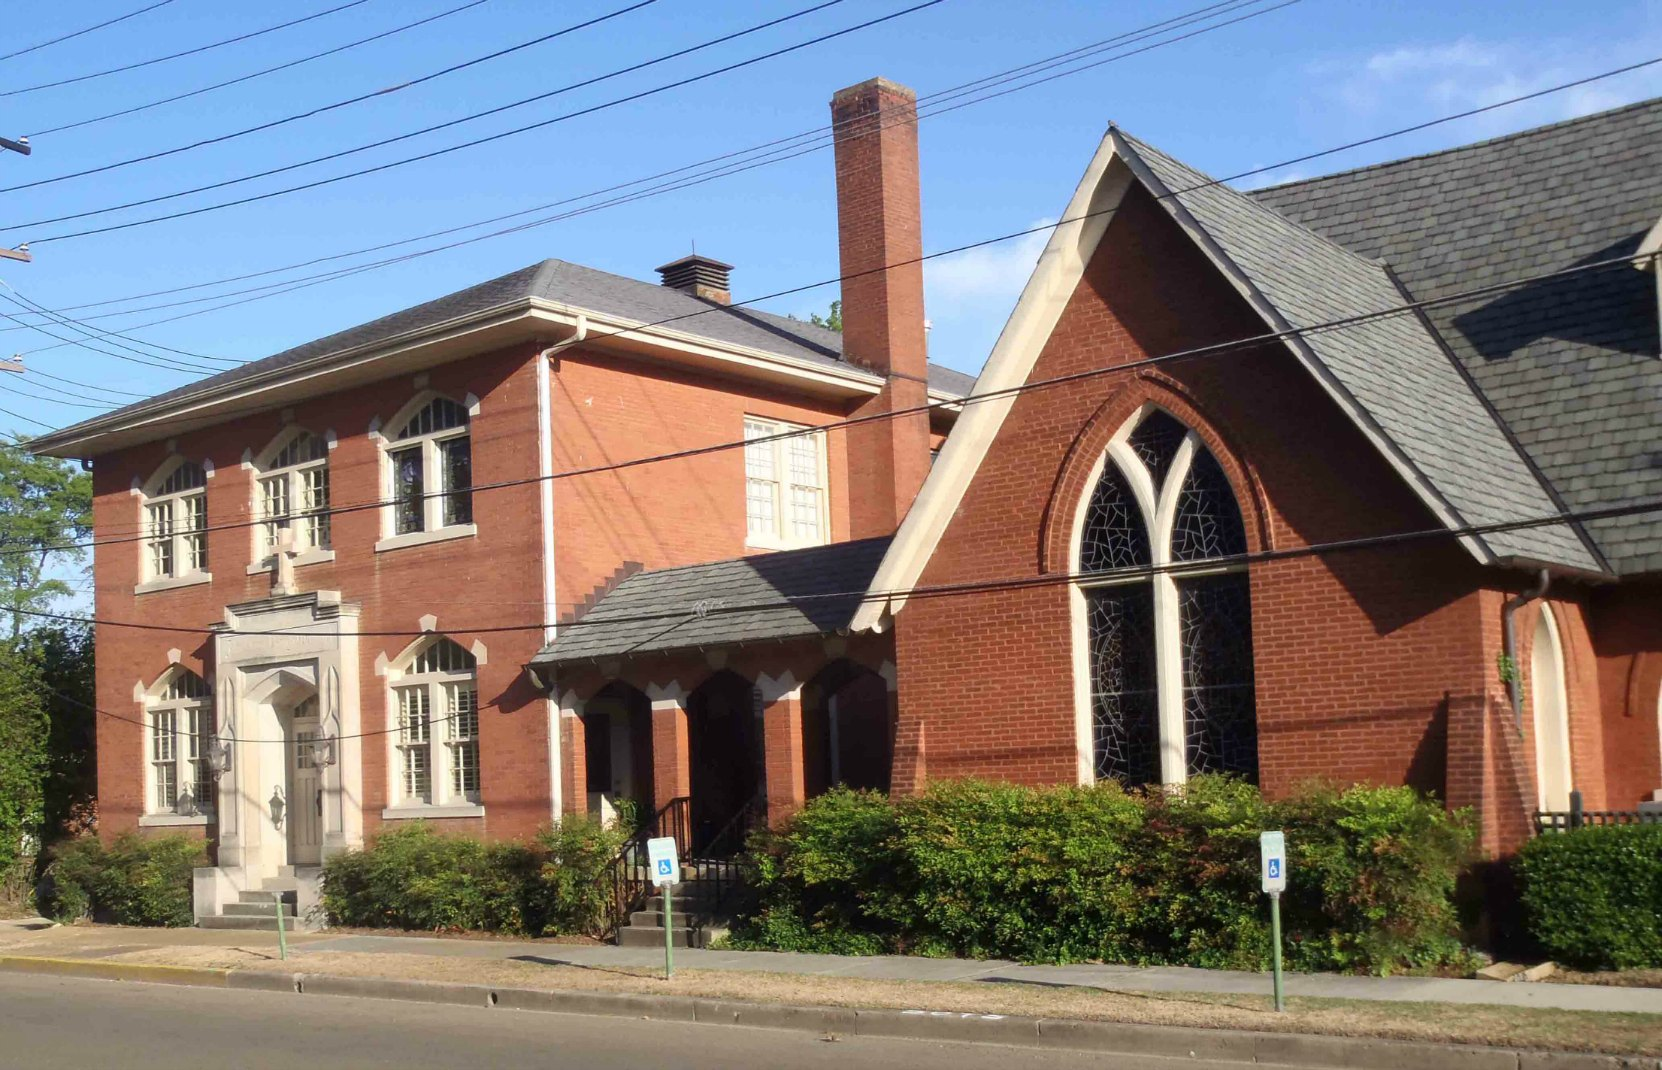 The Rectory of St. George's Episcopal Church, Clarksdale, Mississippi. Tennessee Williams' grandfather lived here when he was Rector of this church.